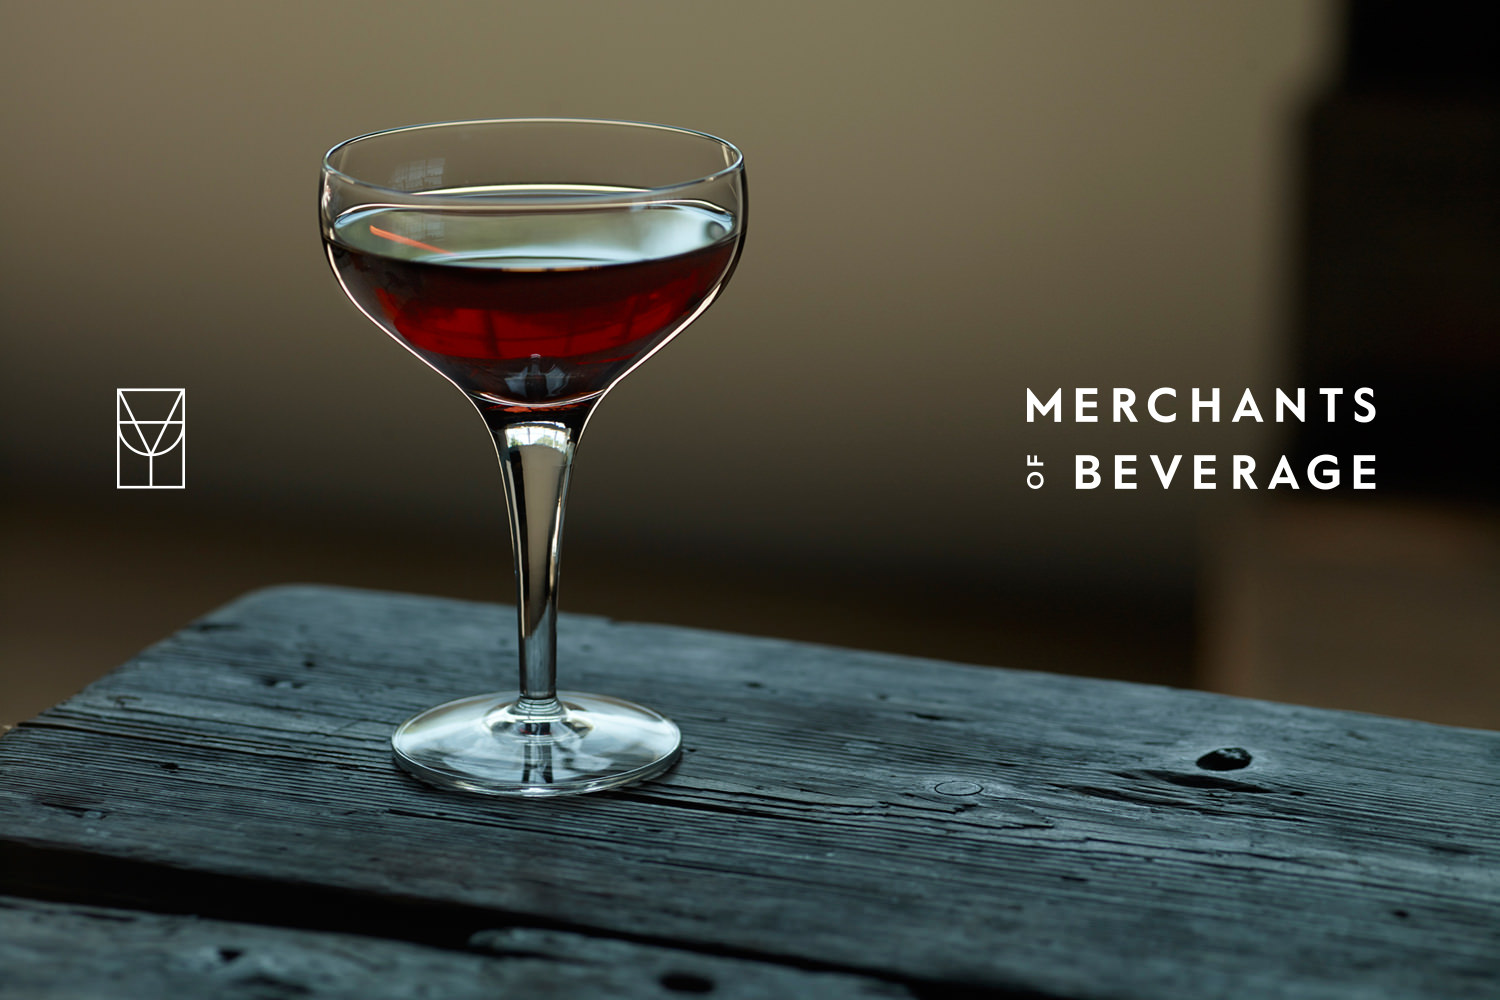 Merchants of Beverage branding